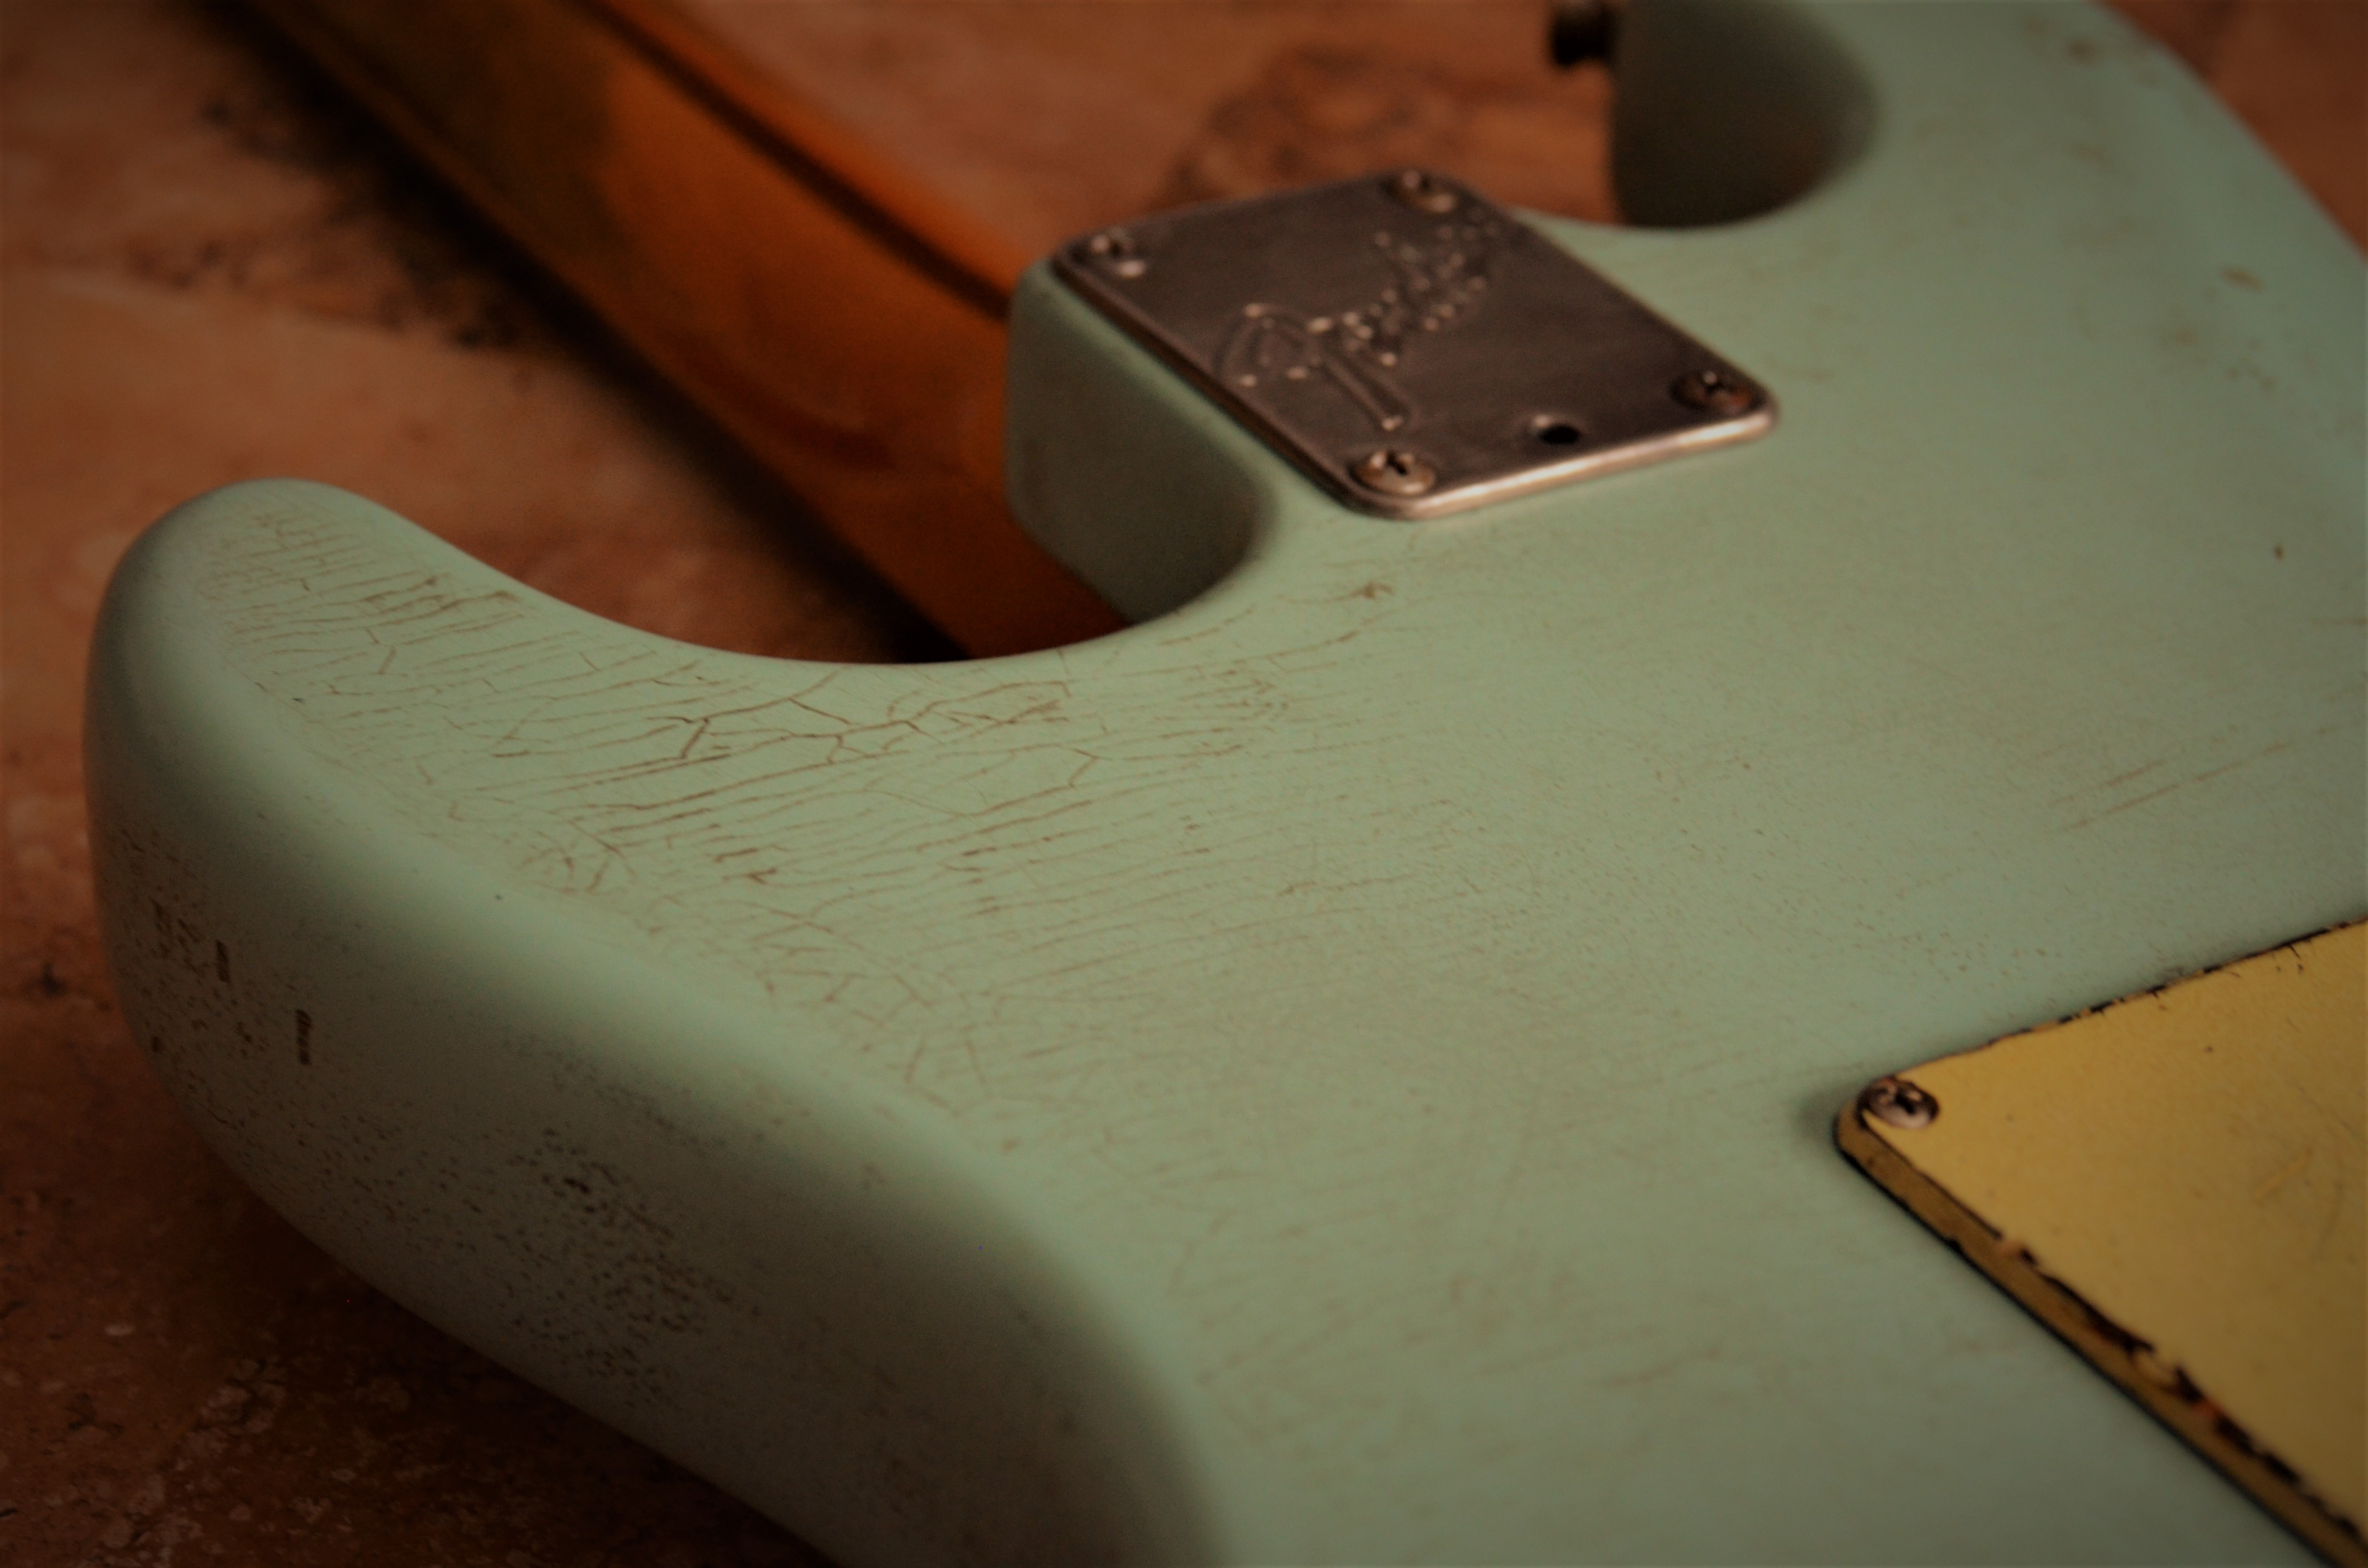 Fender Stratocaster Relic Neck Plate Finish Checking Surf Green Guitarwacky.com